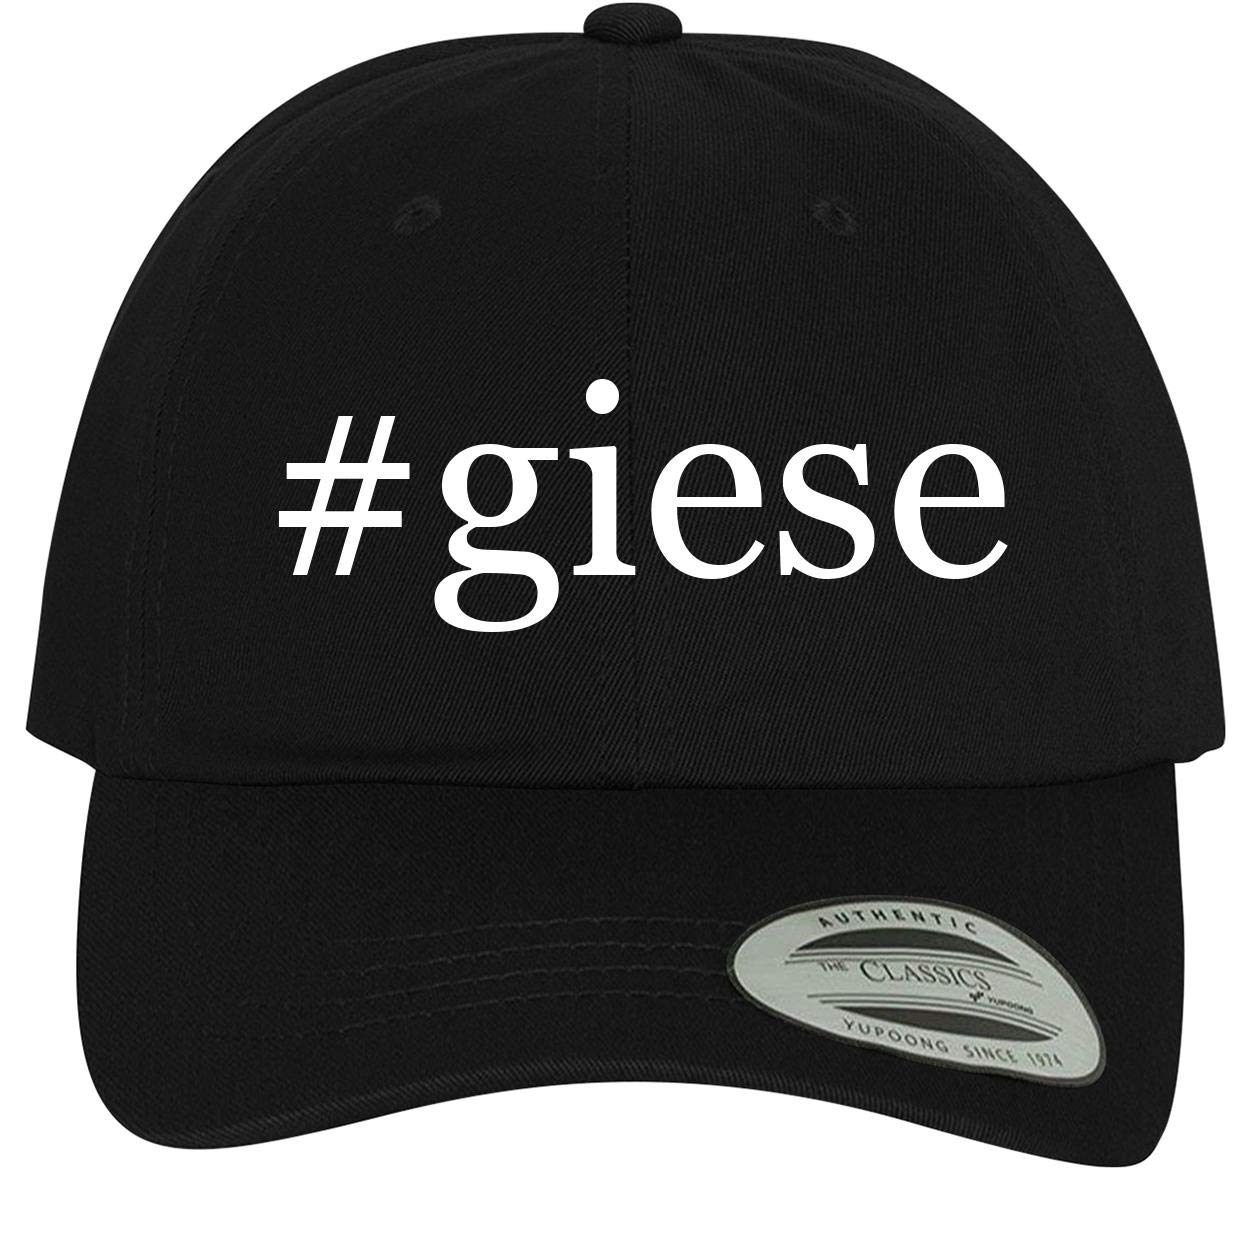 Comfortable Dad Hat Baseball Cap BH Cool Designs #Giese